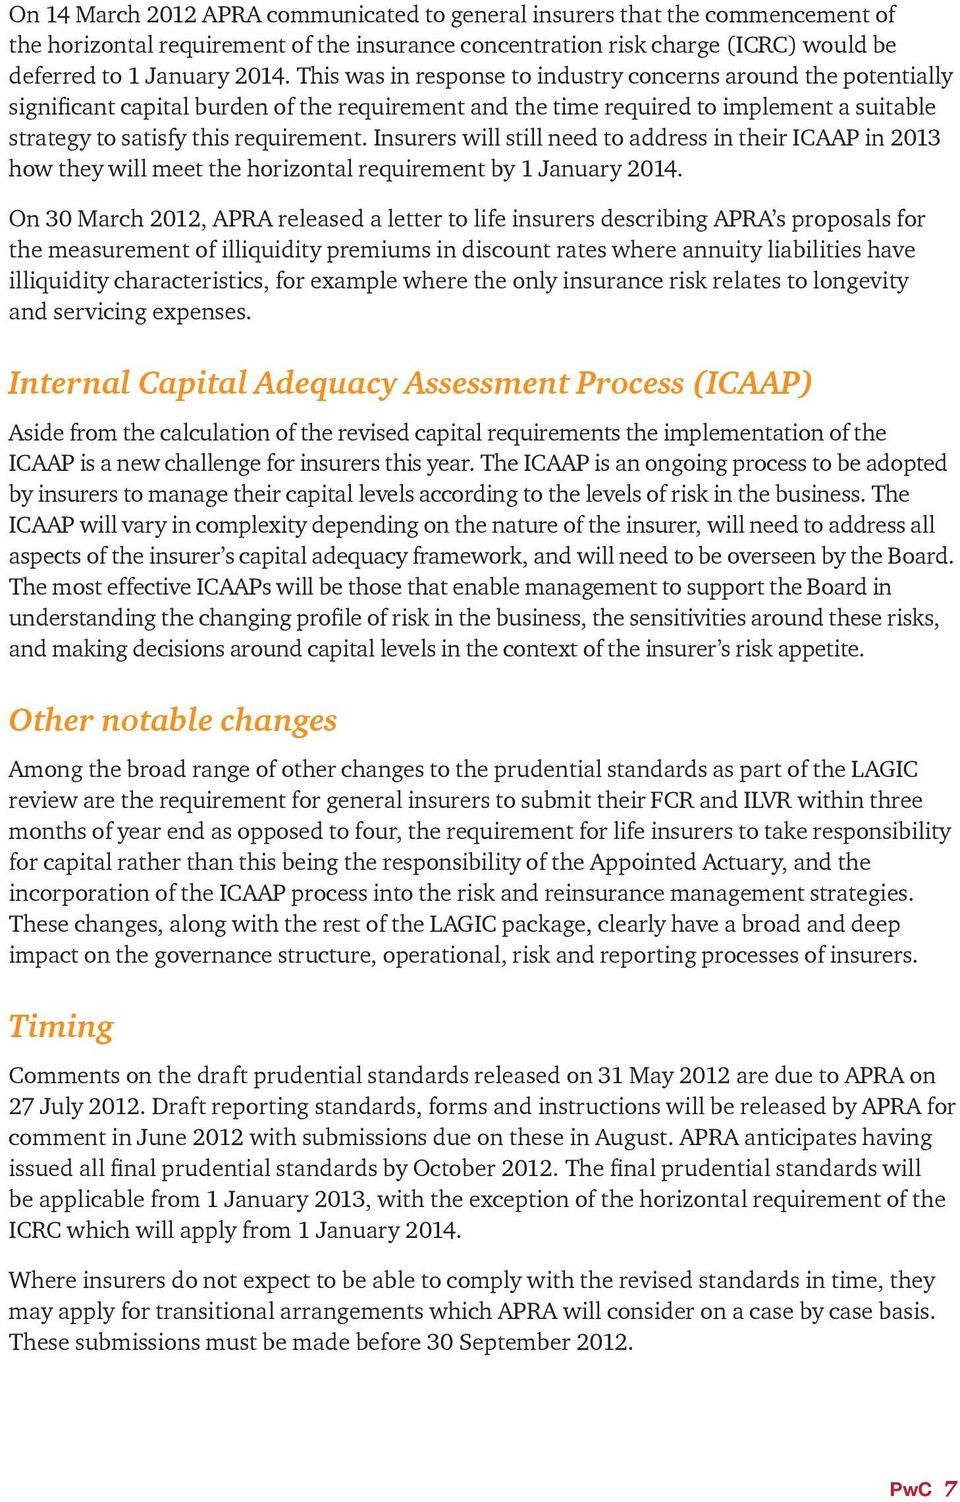 Insurers will still need to address in their ICAAP in 2013 how they will meet the horizontal requirement by 1 January 2014.